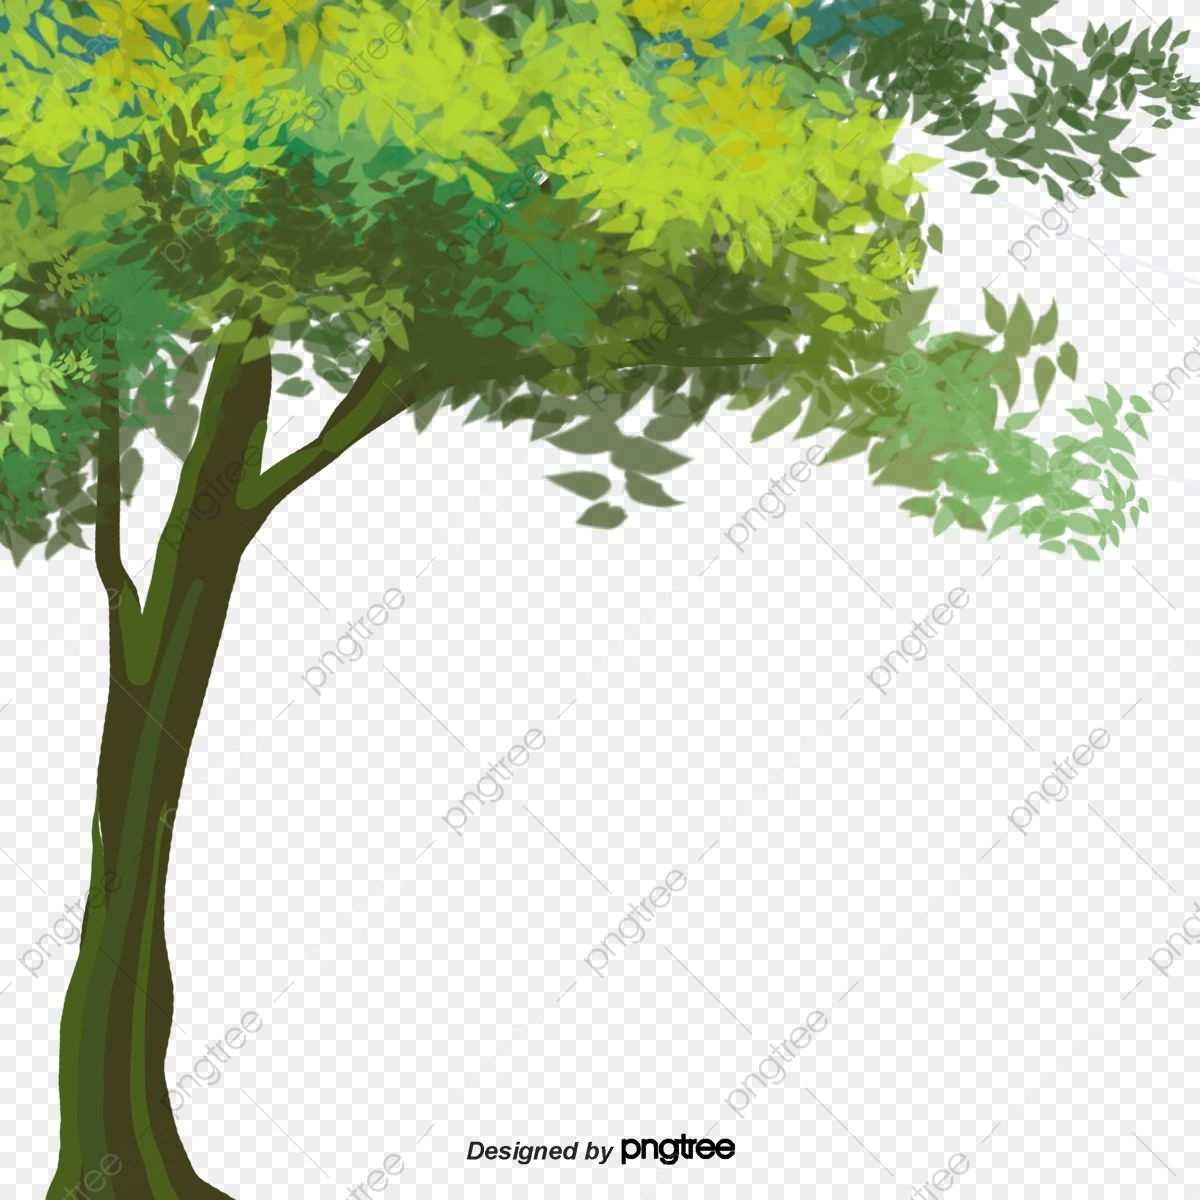 Download This Hand Painted Cartoon Green Tree Decoration Cartoon Big Tree Hand Painted Png Clipart Image W Cartoon Trees Green Trees Christmas Tree Painting